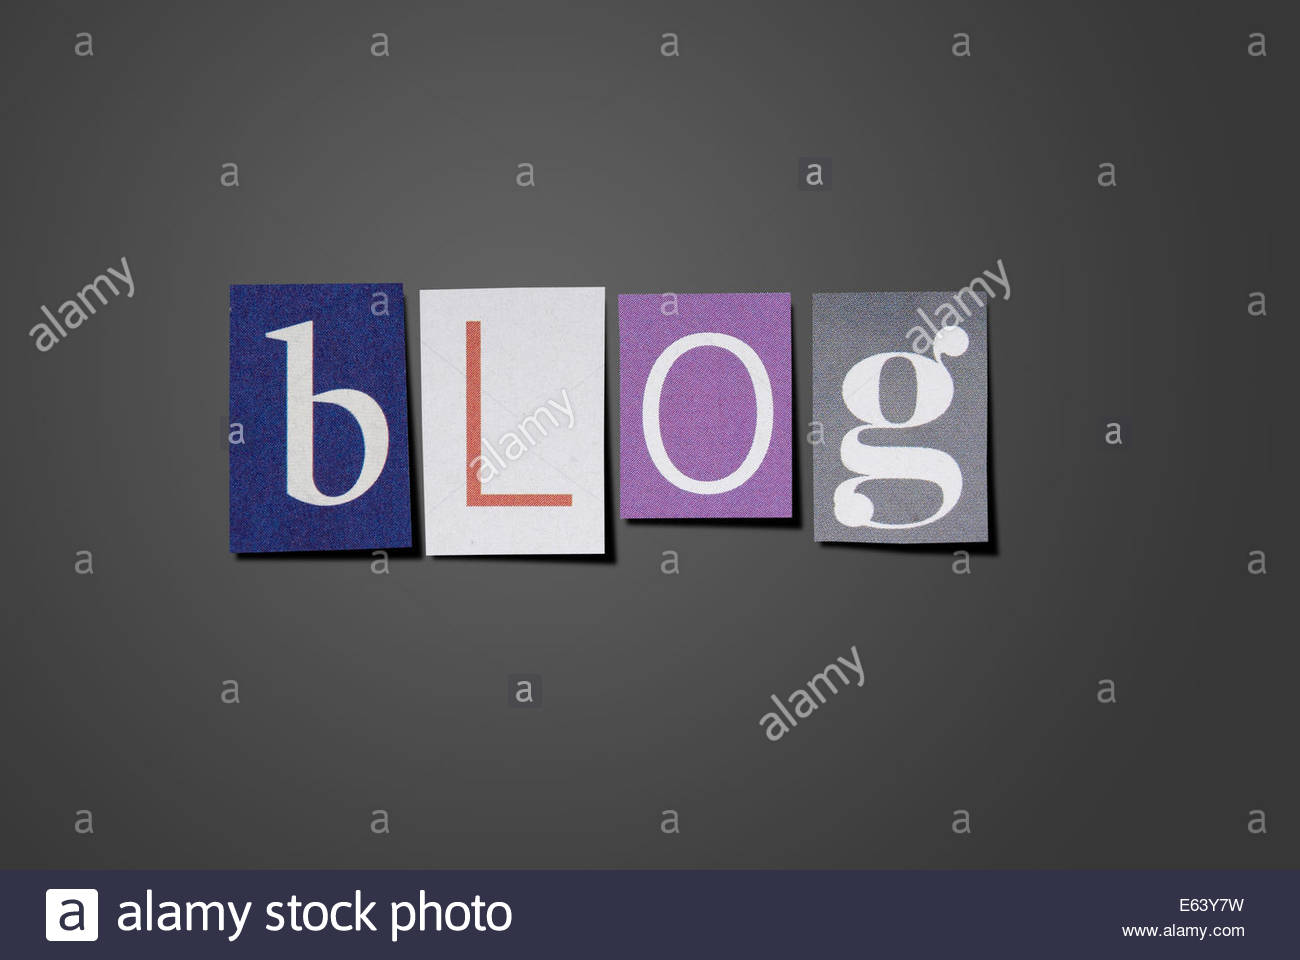 Blog title made from cut out letters from printed matter. With clipping path. - Stock Image